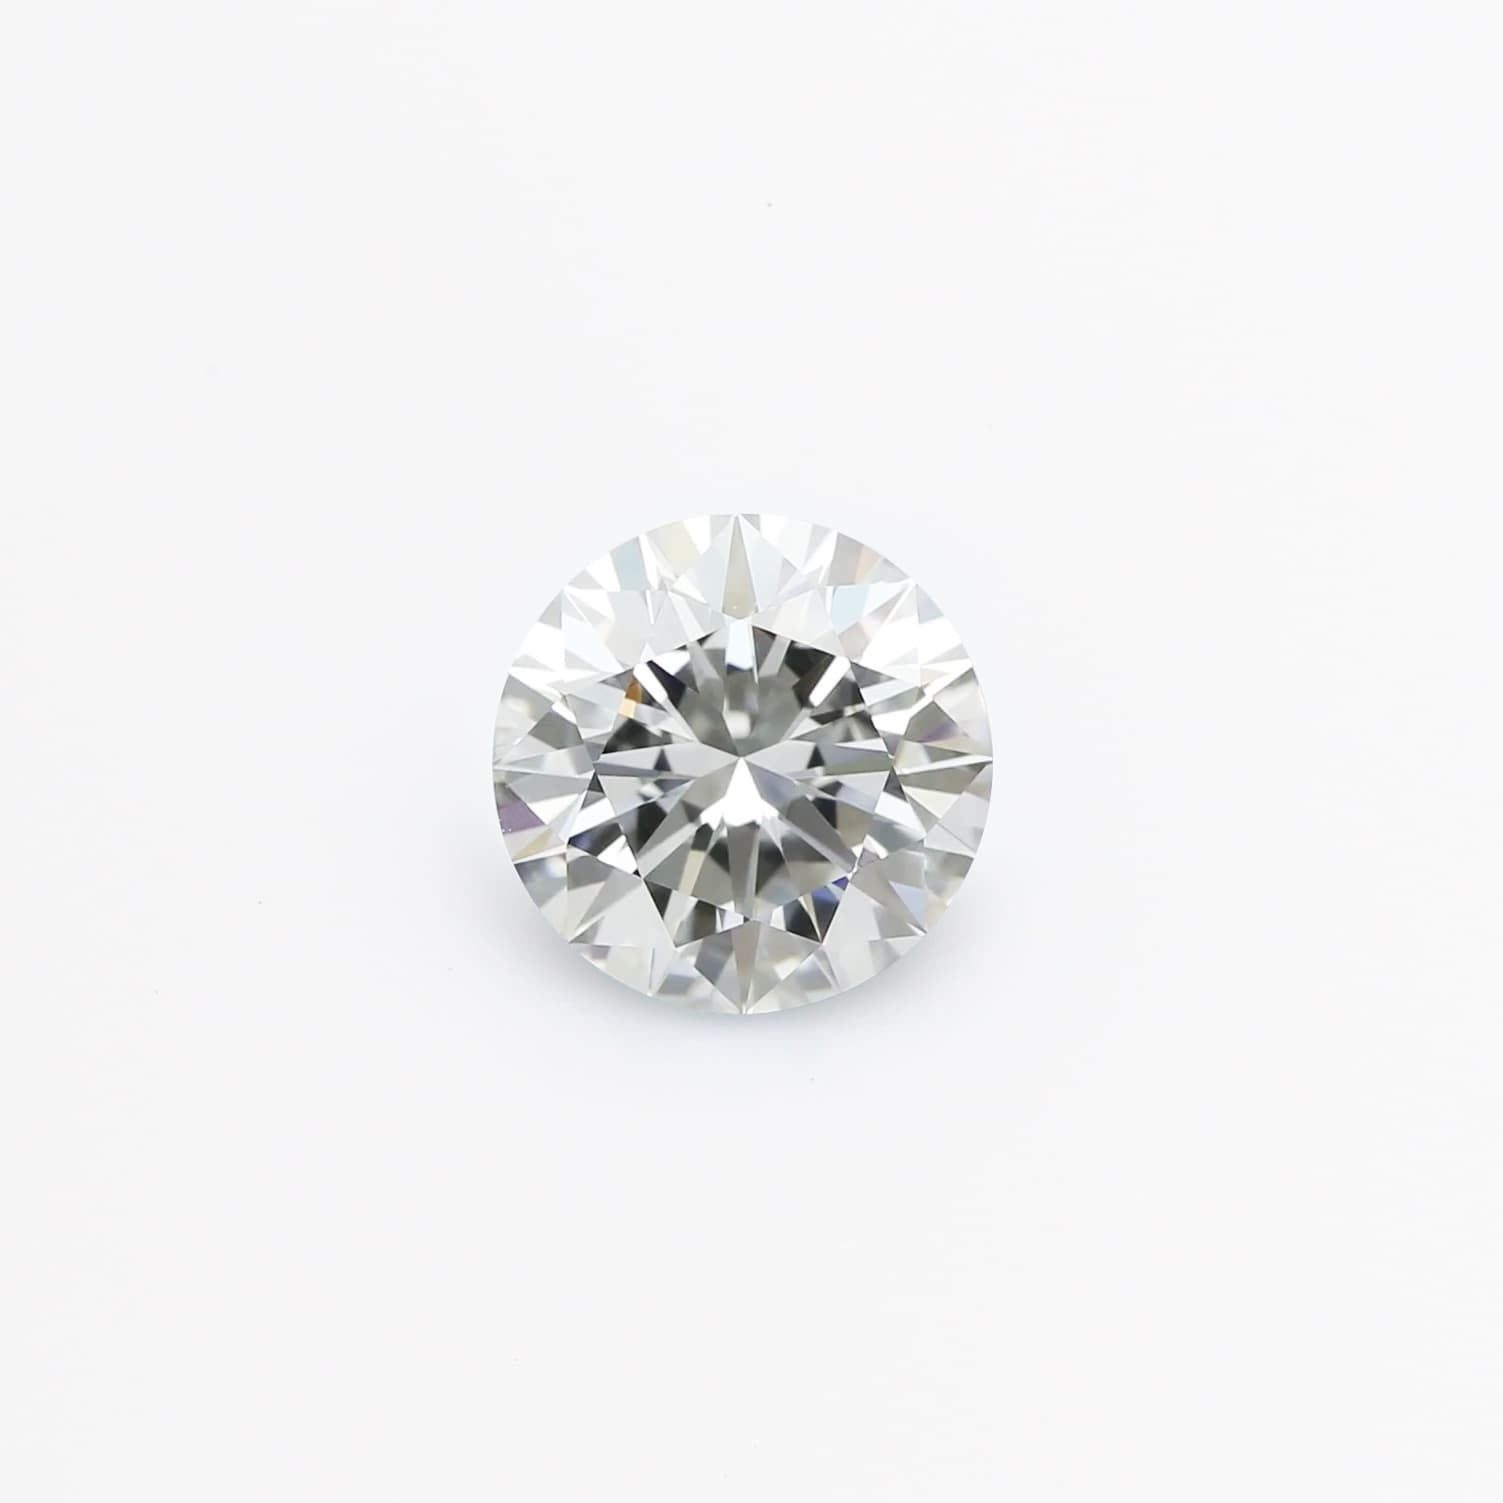 0.55 Carat Round J VVS 2 Lab-Grown Diamond